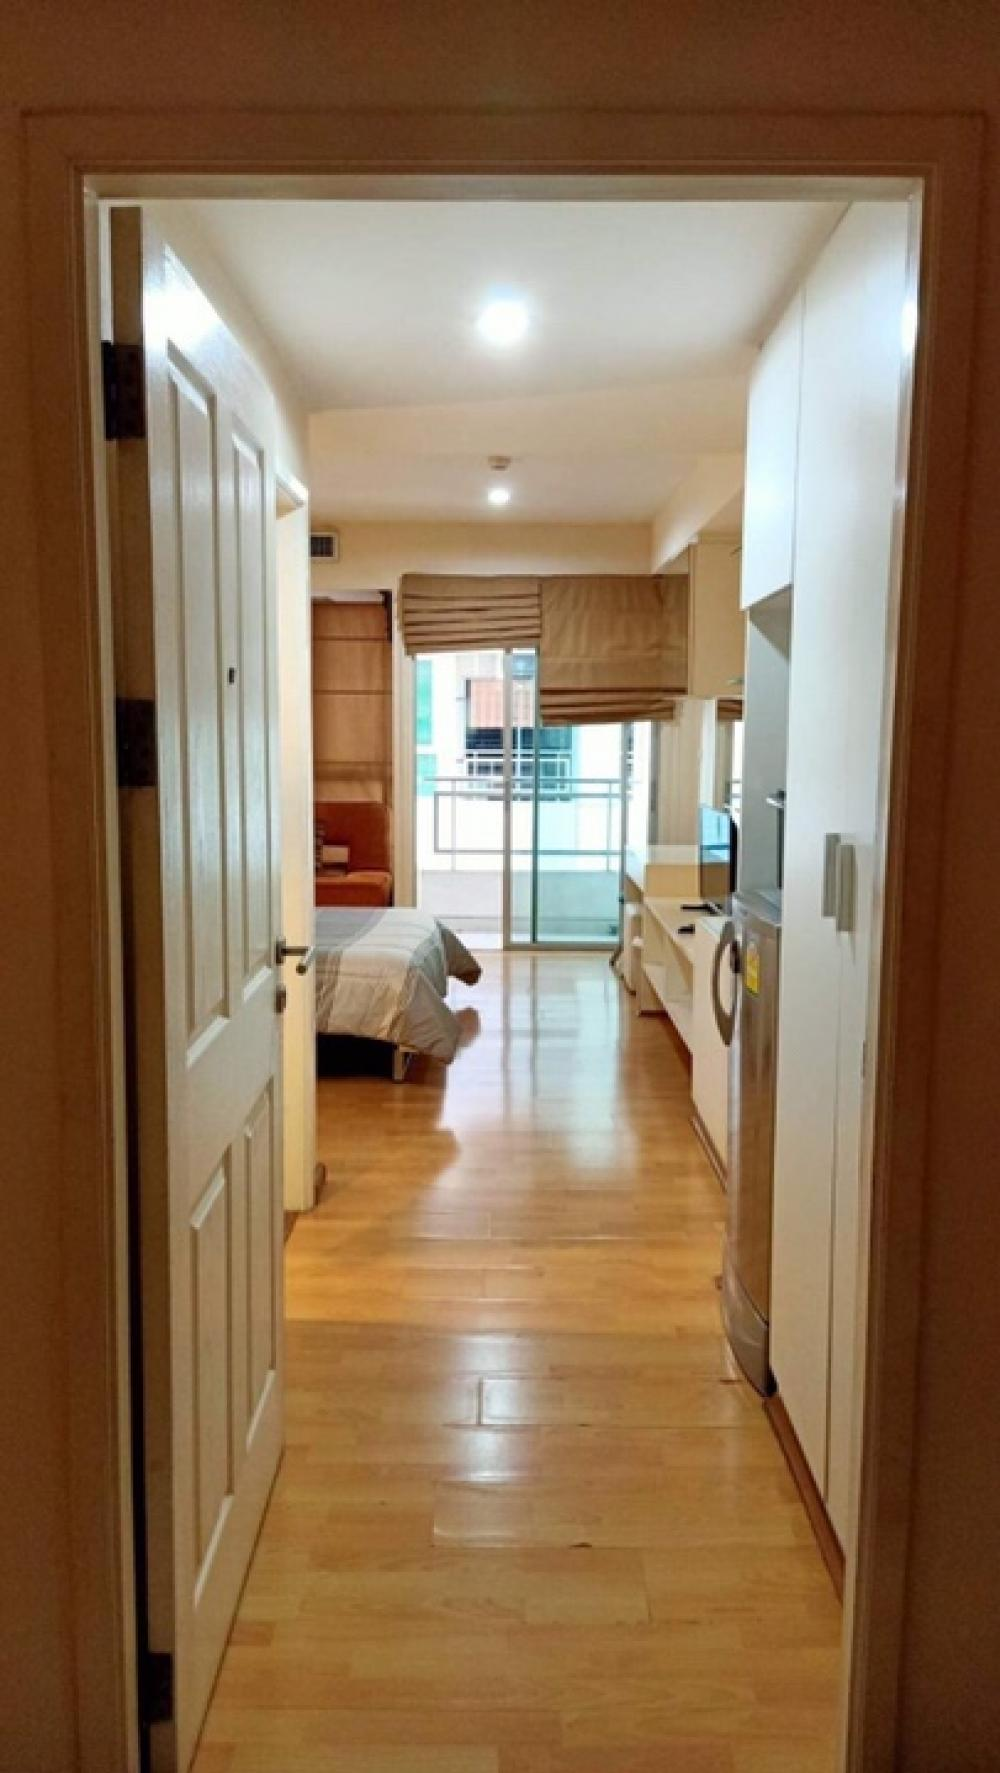 For RentCondoRamkhamhaeng, Hua Mak : NC-R231🌸 Beautiful condo for rent. Fully furnished Ramkhamhaeng area, next to ABAC University, convenient transportation, near department stores. 🌸 Condo for rent, The Inspire Place, ABAC, 9th floor 🌸 Area of 30 square meters, 1 bedroom, fully furnished,